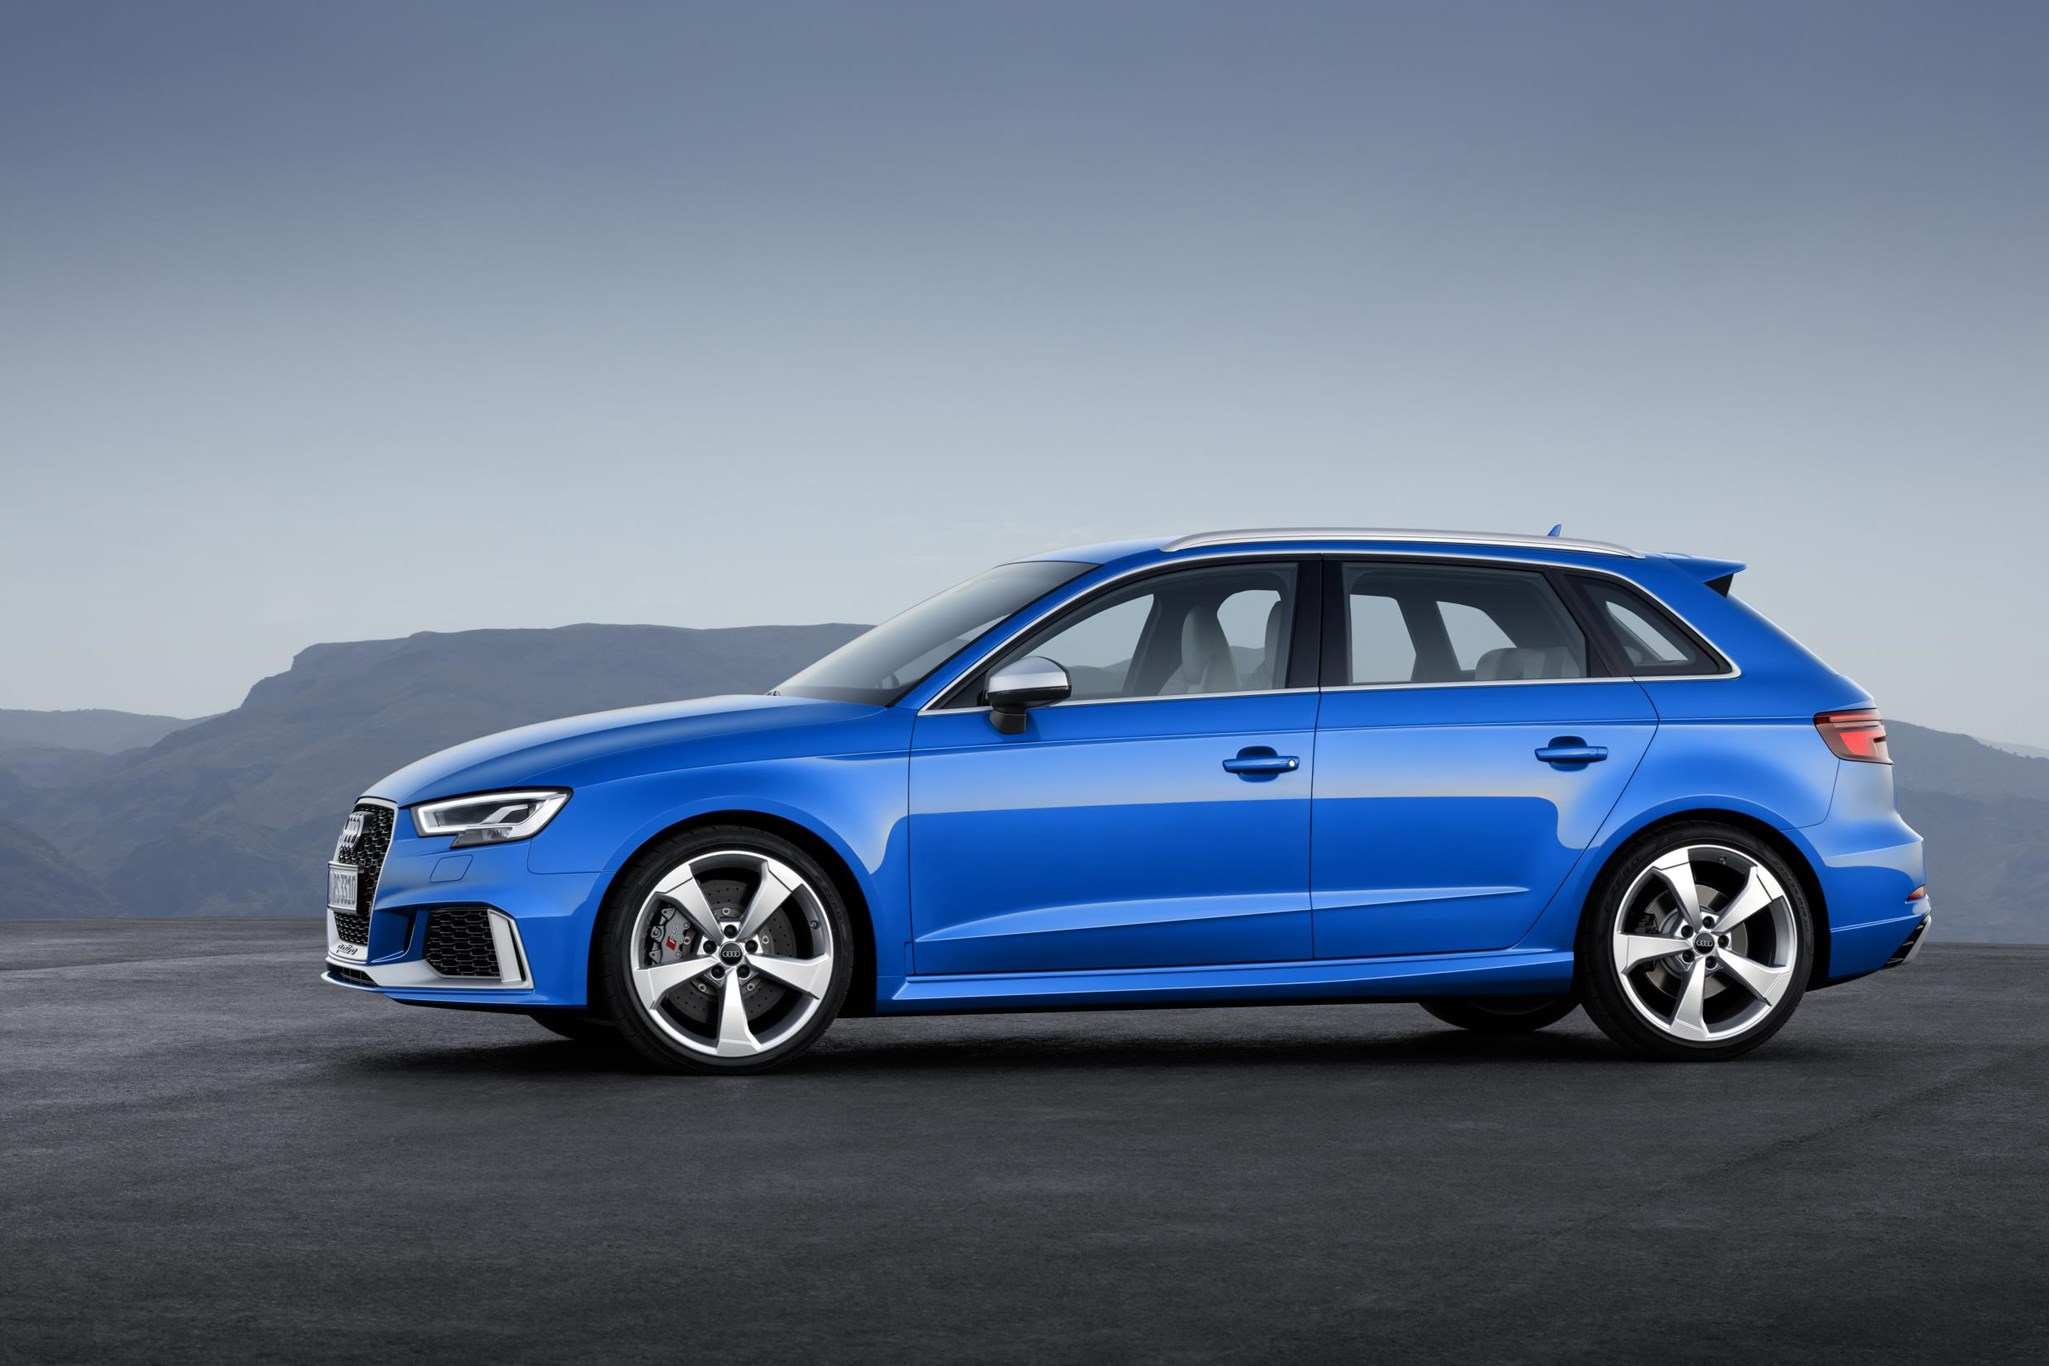 Audi S3 in Johannesburg  Cars  Gumtree Classifieds South